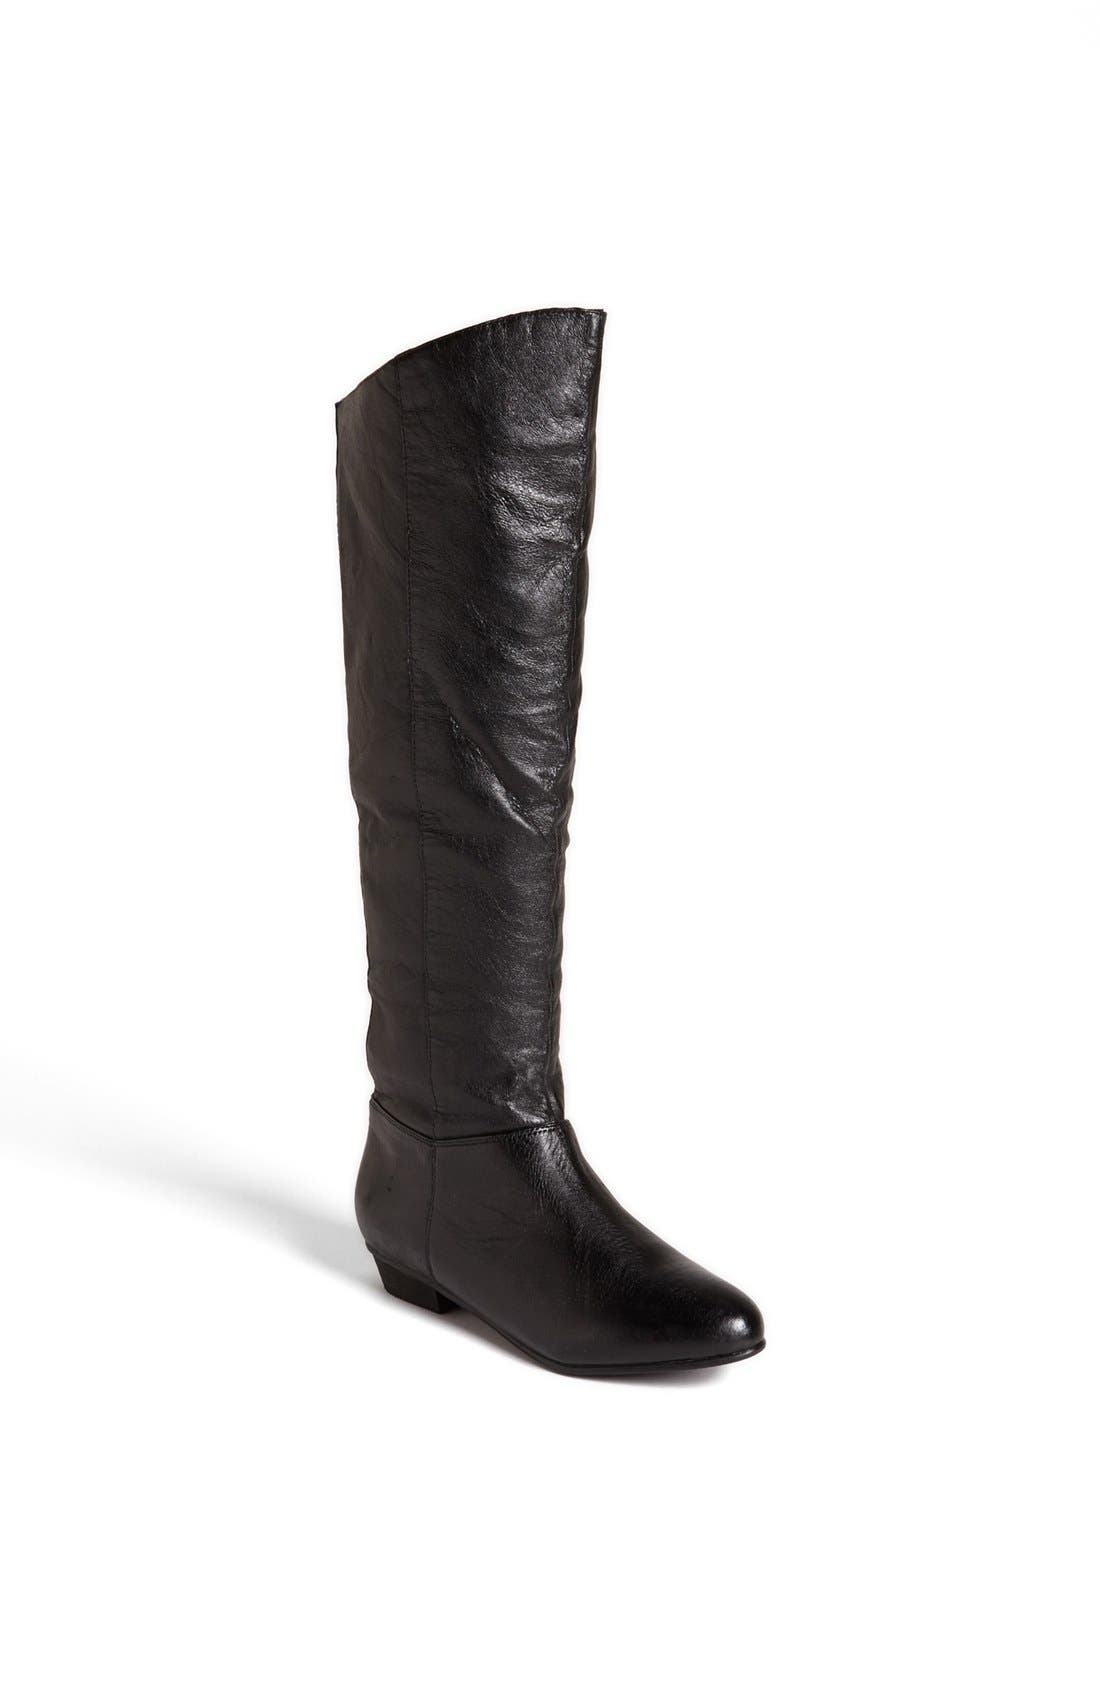 Alternate Image 1 Selected - Steve Madden 'Creation' Boot